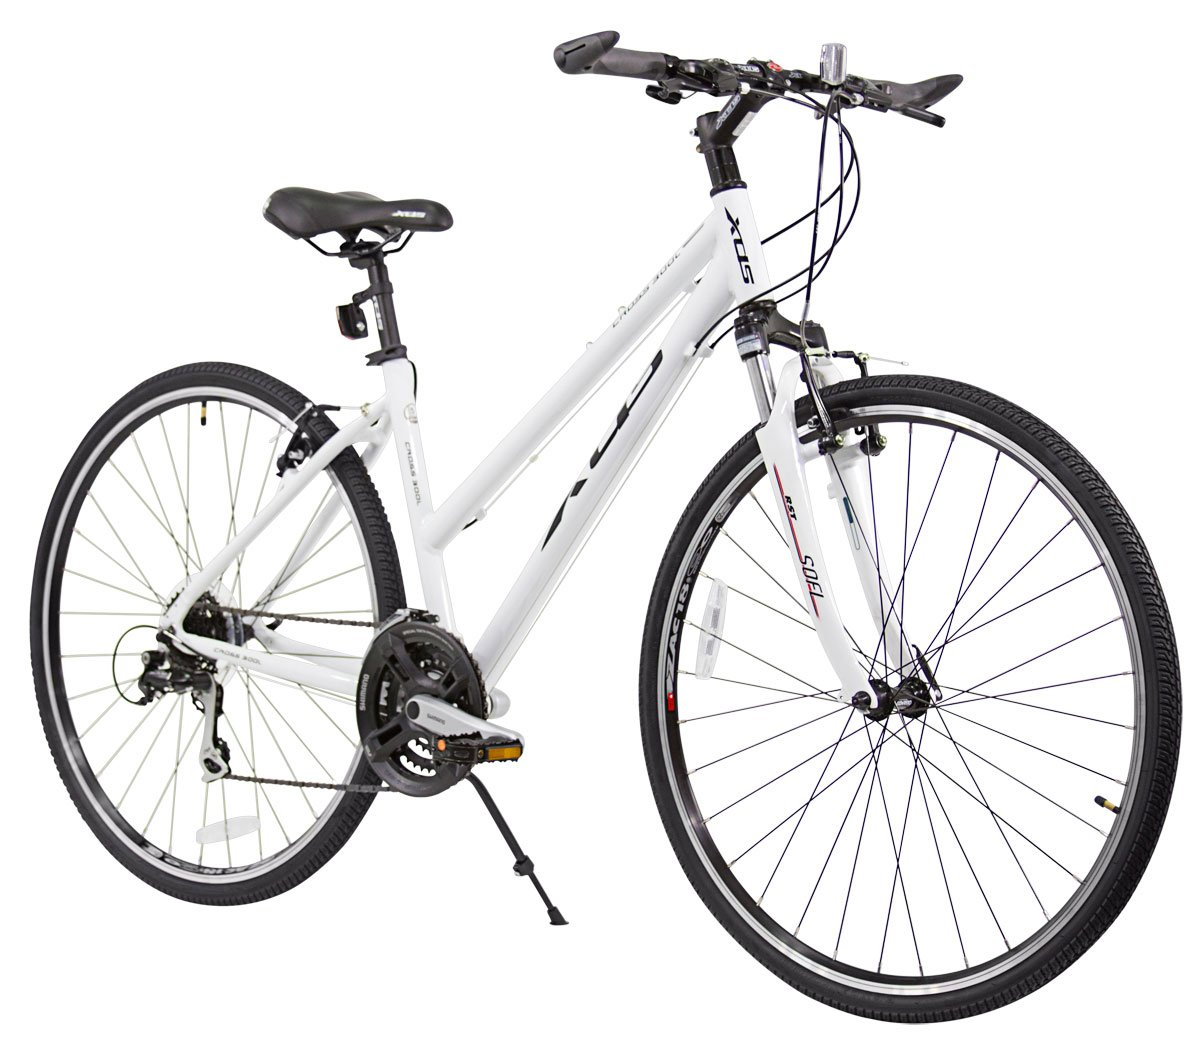 The Xds Women's Cross 300 24-Speed Hybrid Bike